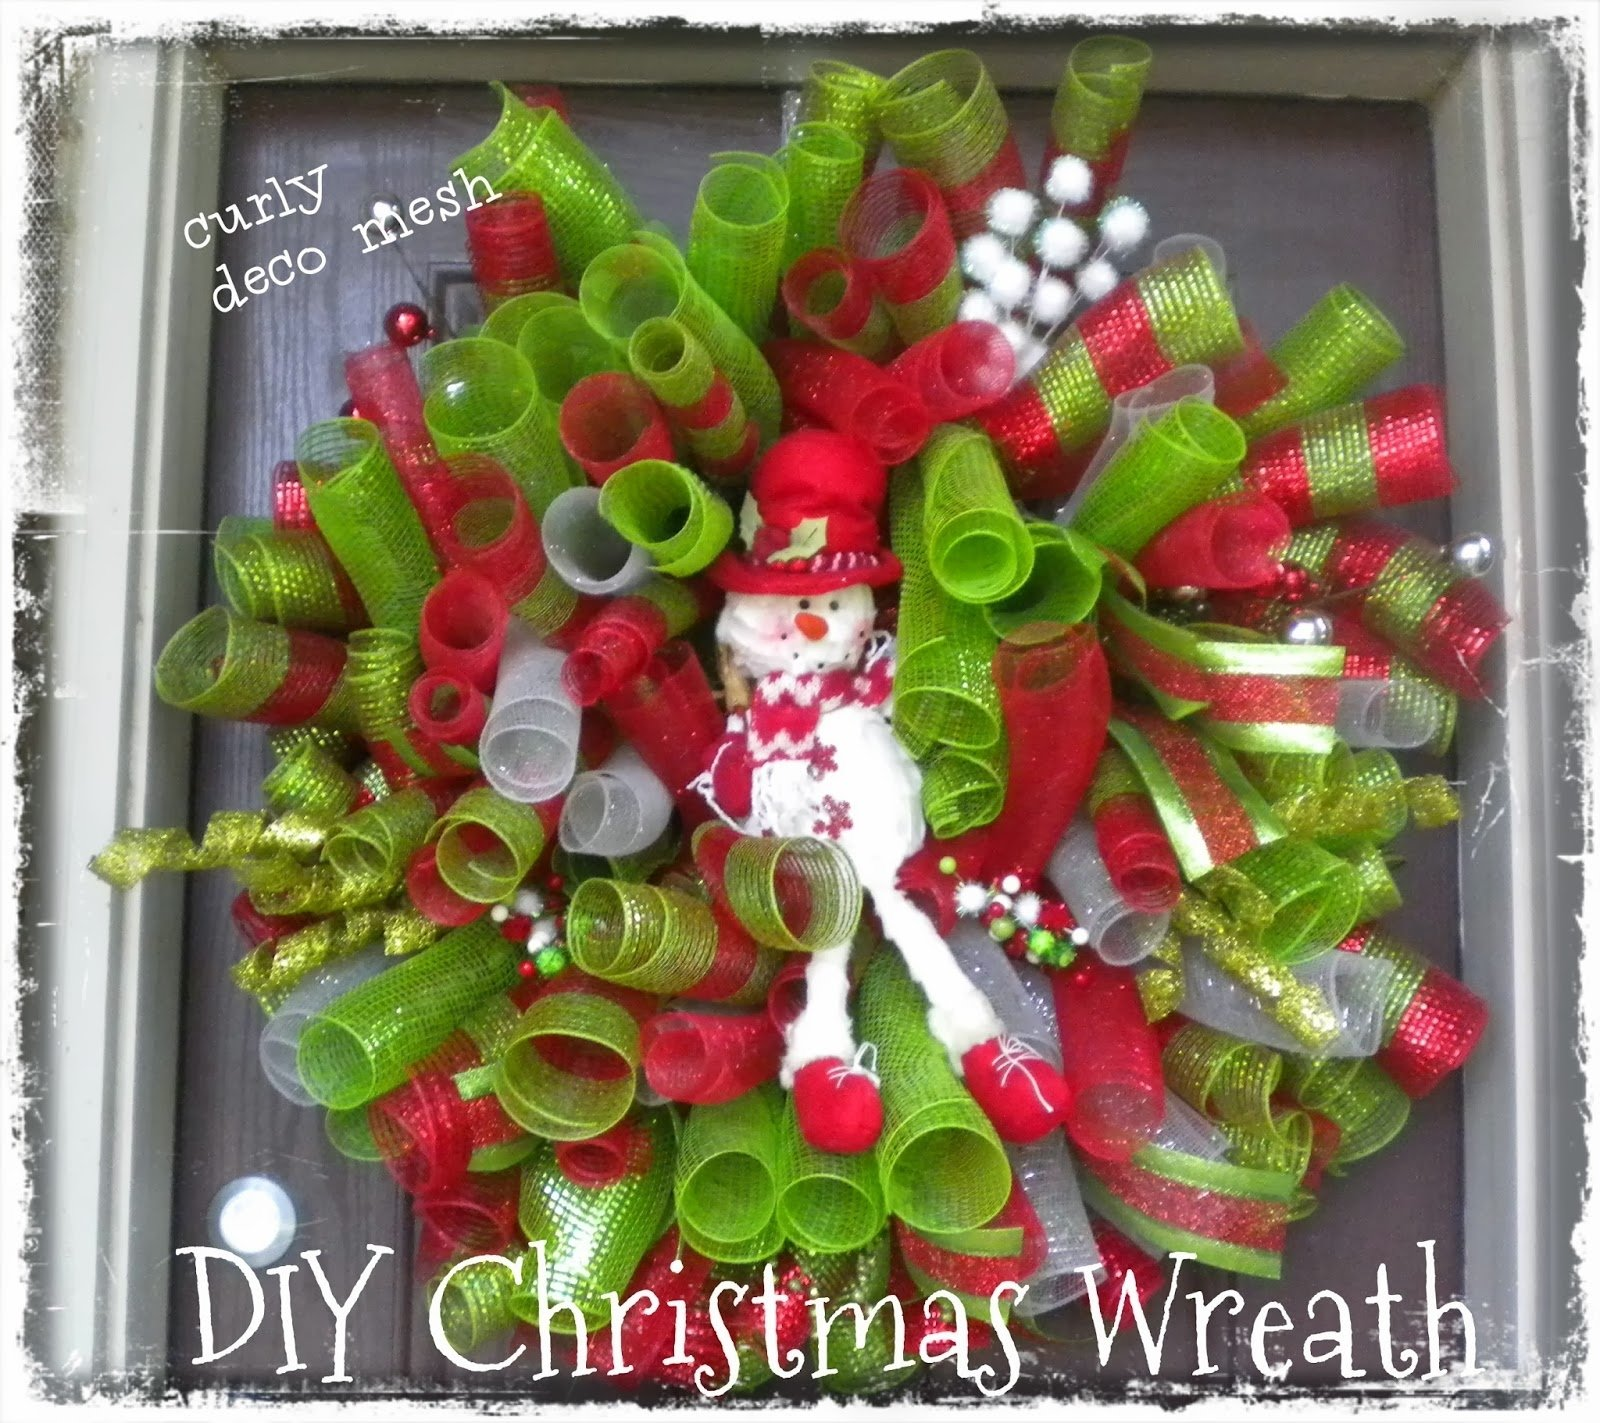 10 Ideal Deco Mesh Christmas Wreath Ideas diy christmas deco mesh curly snowman wreath 2013 1 2020